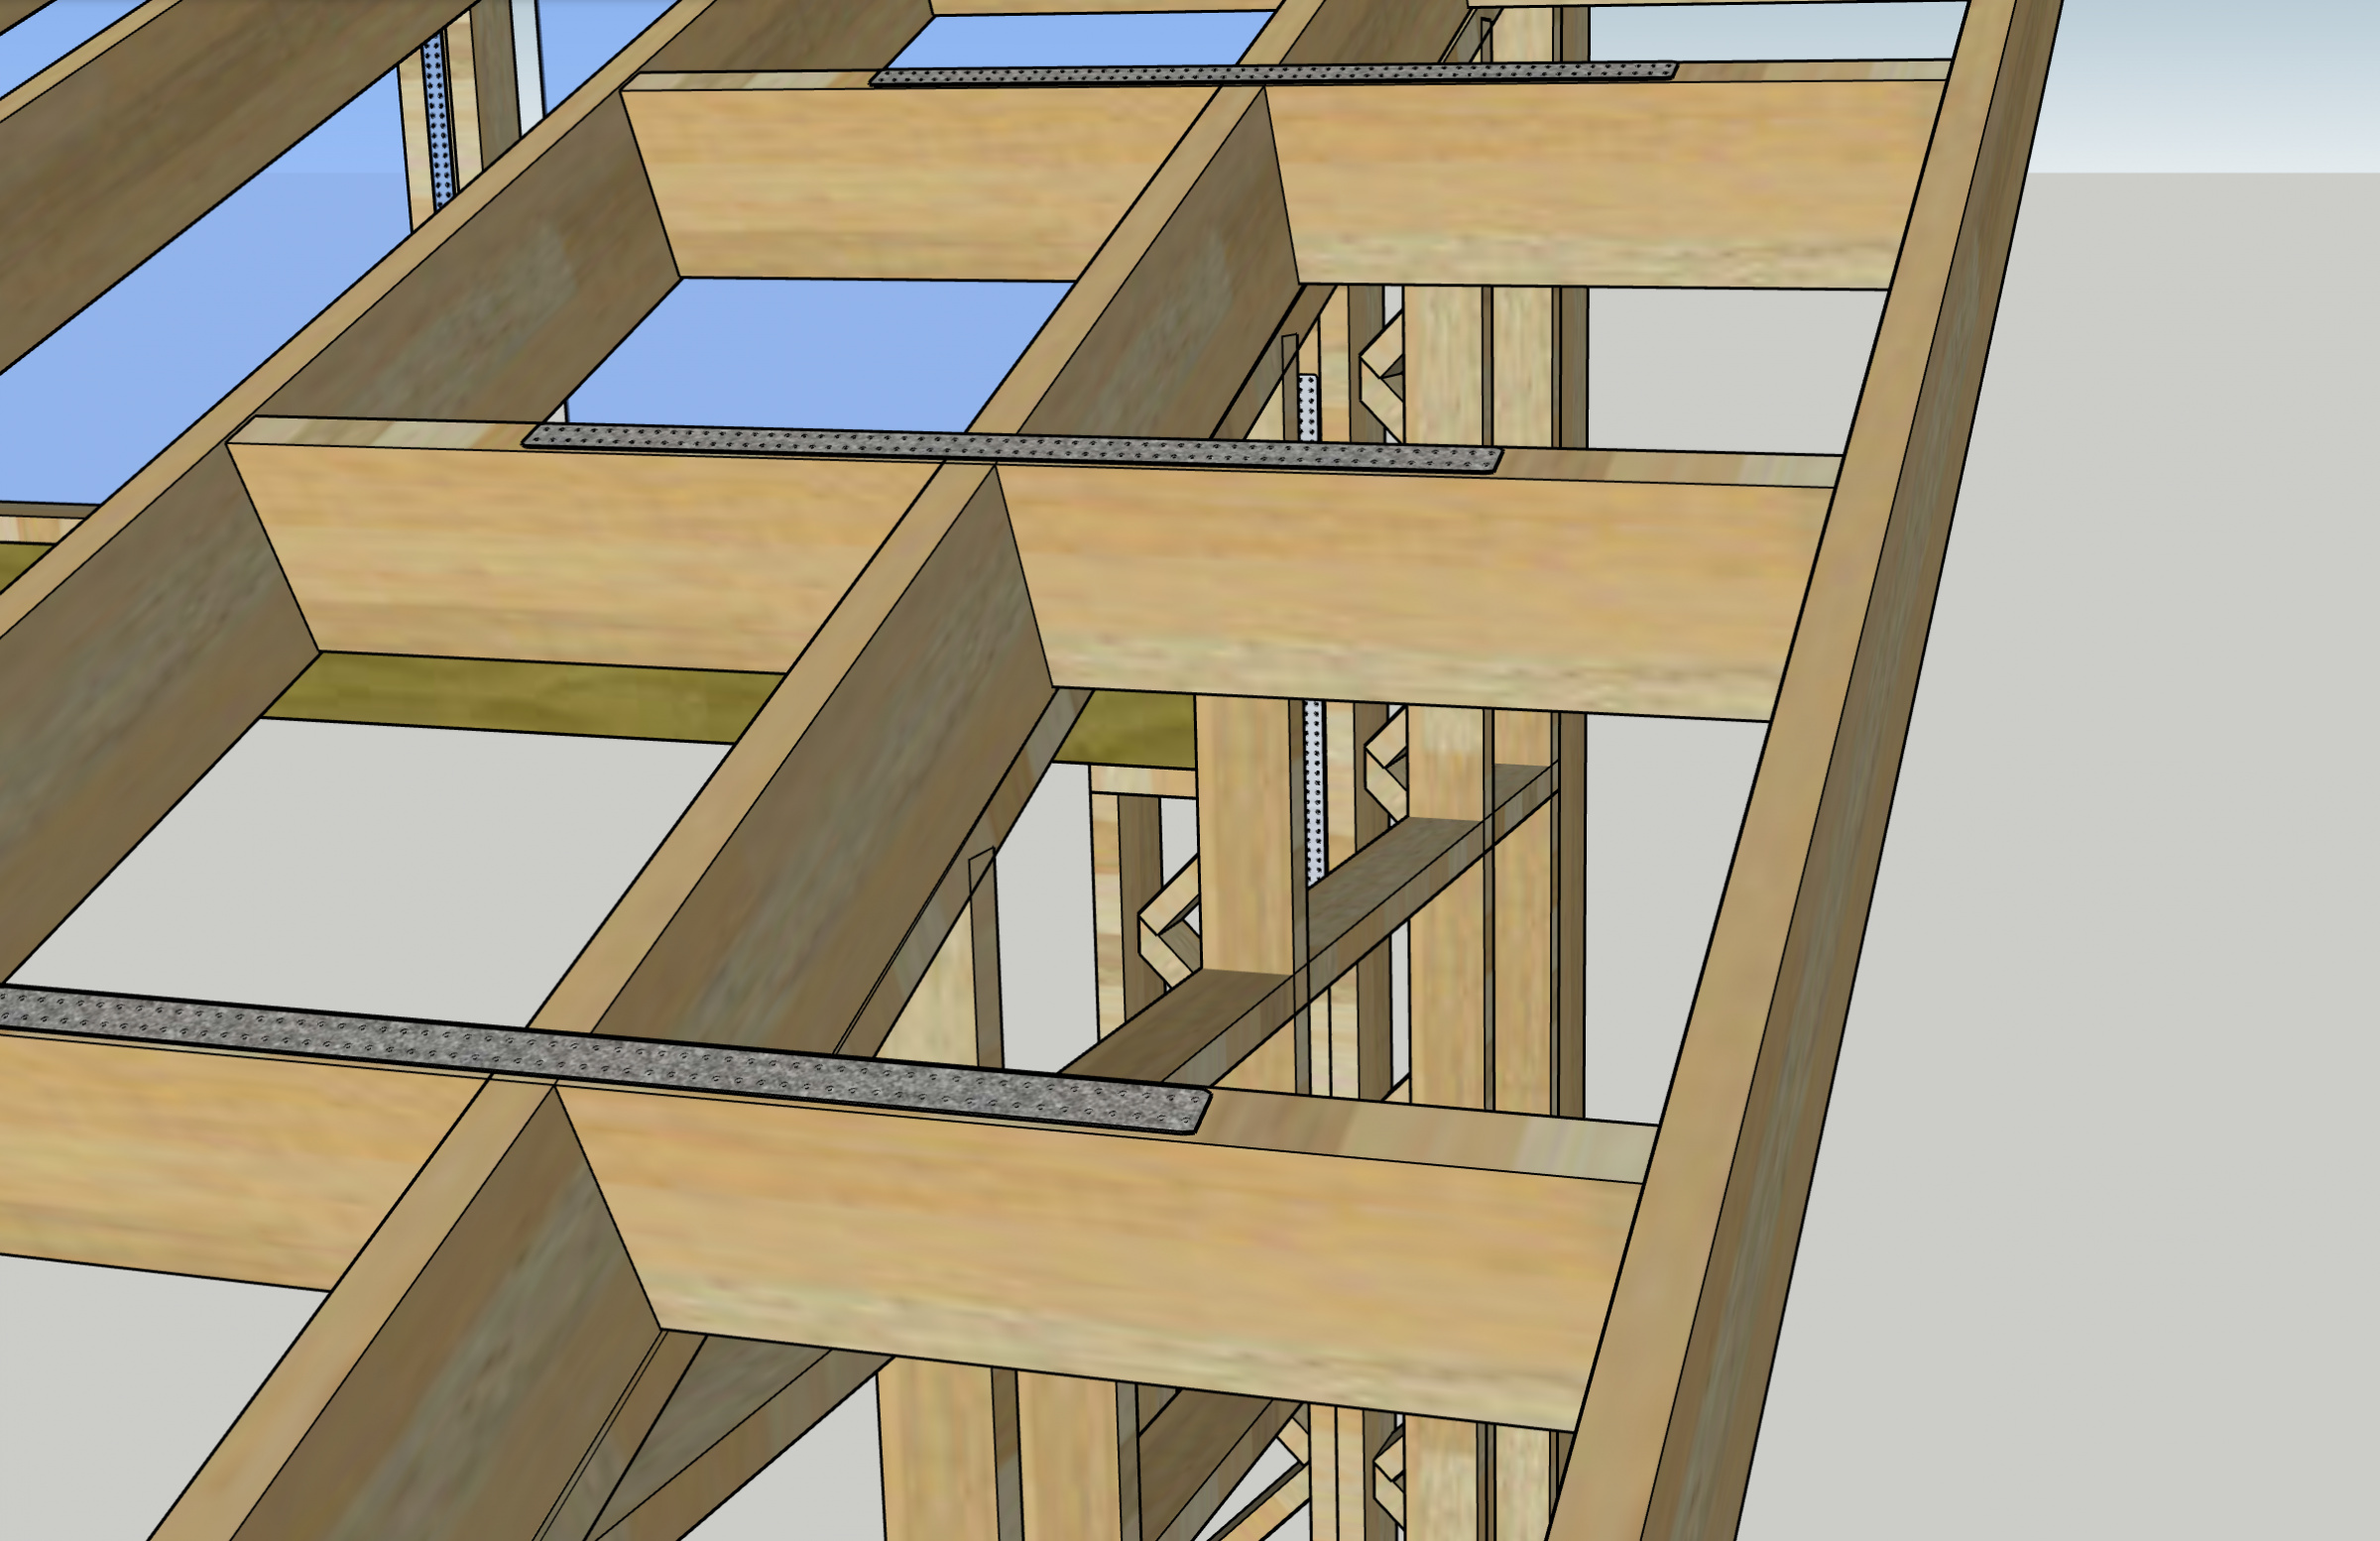 Shed / workshop framing design--is it too ambitious?-screen-shot-2020-04-27-3.08.41-pm.jpg